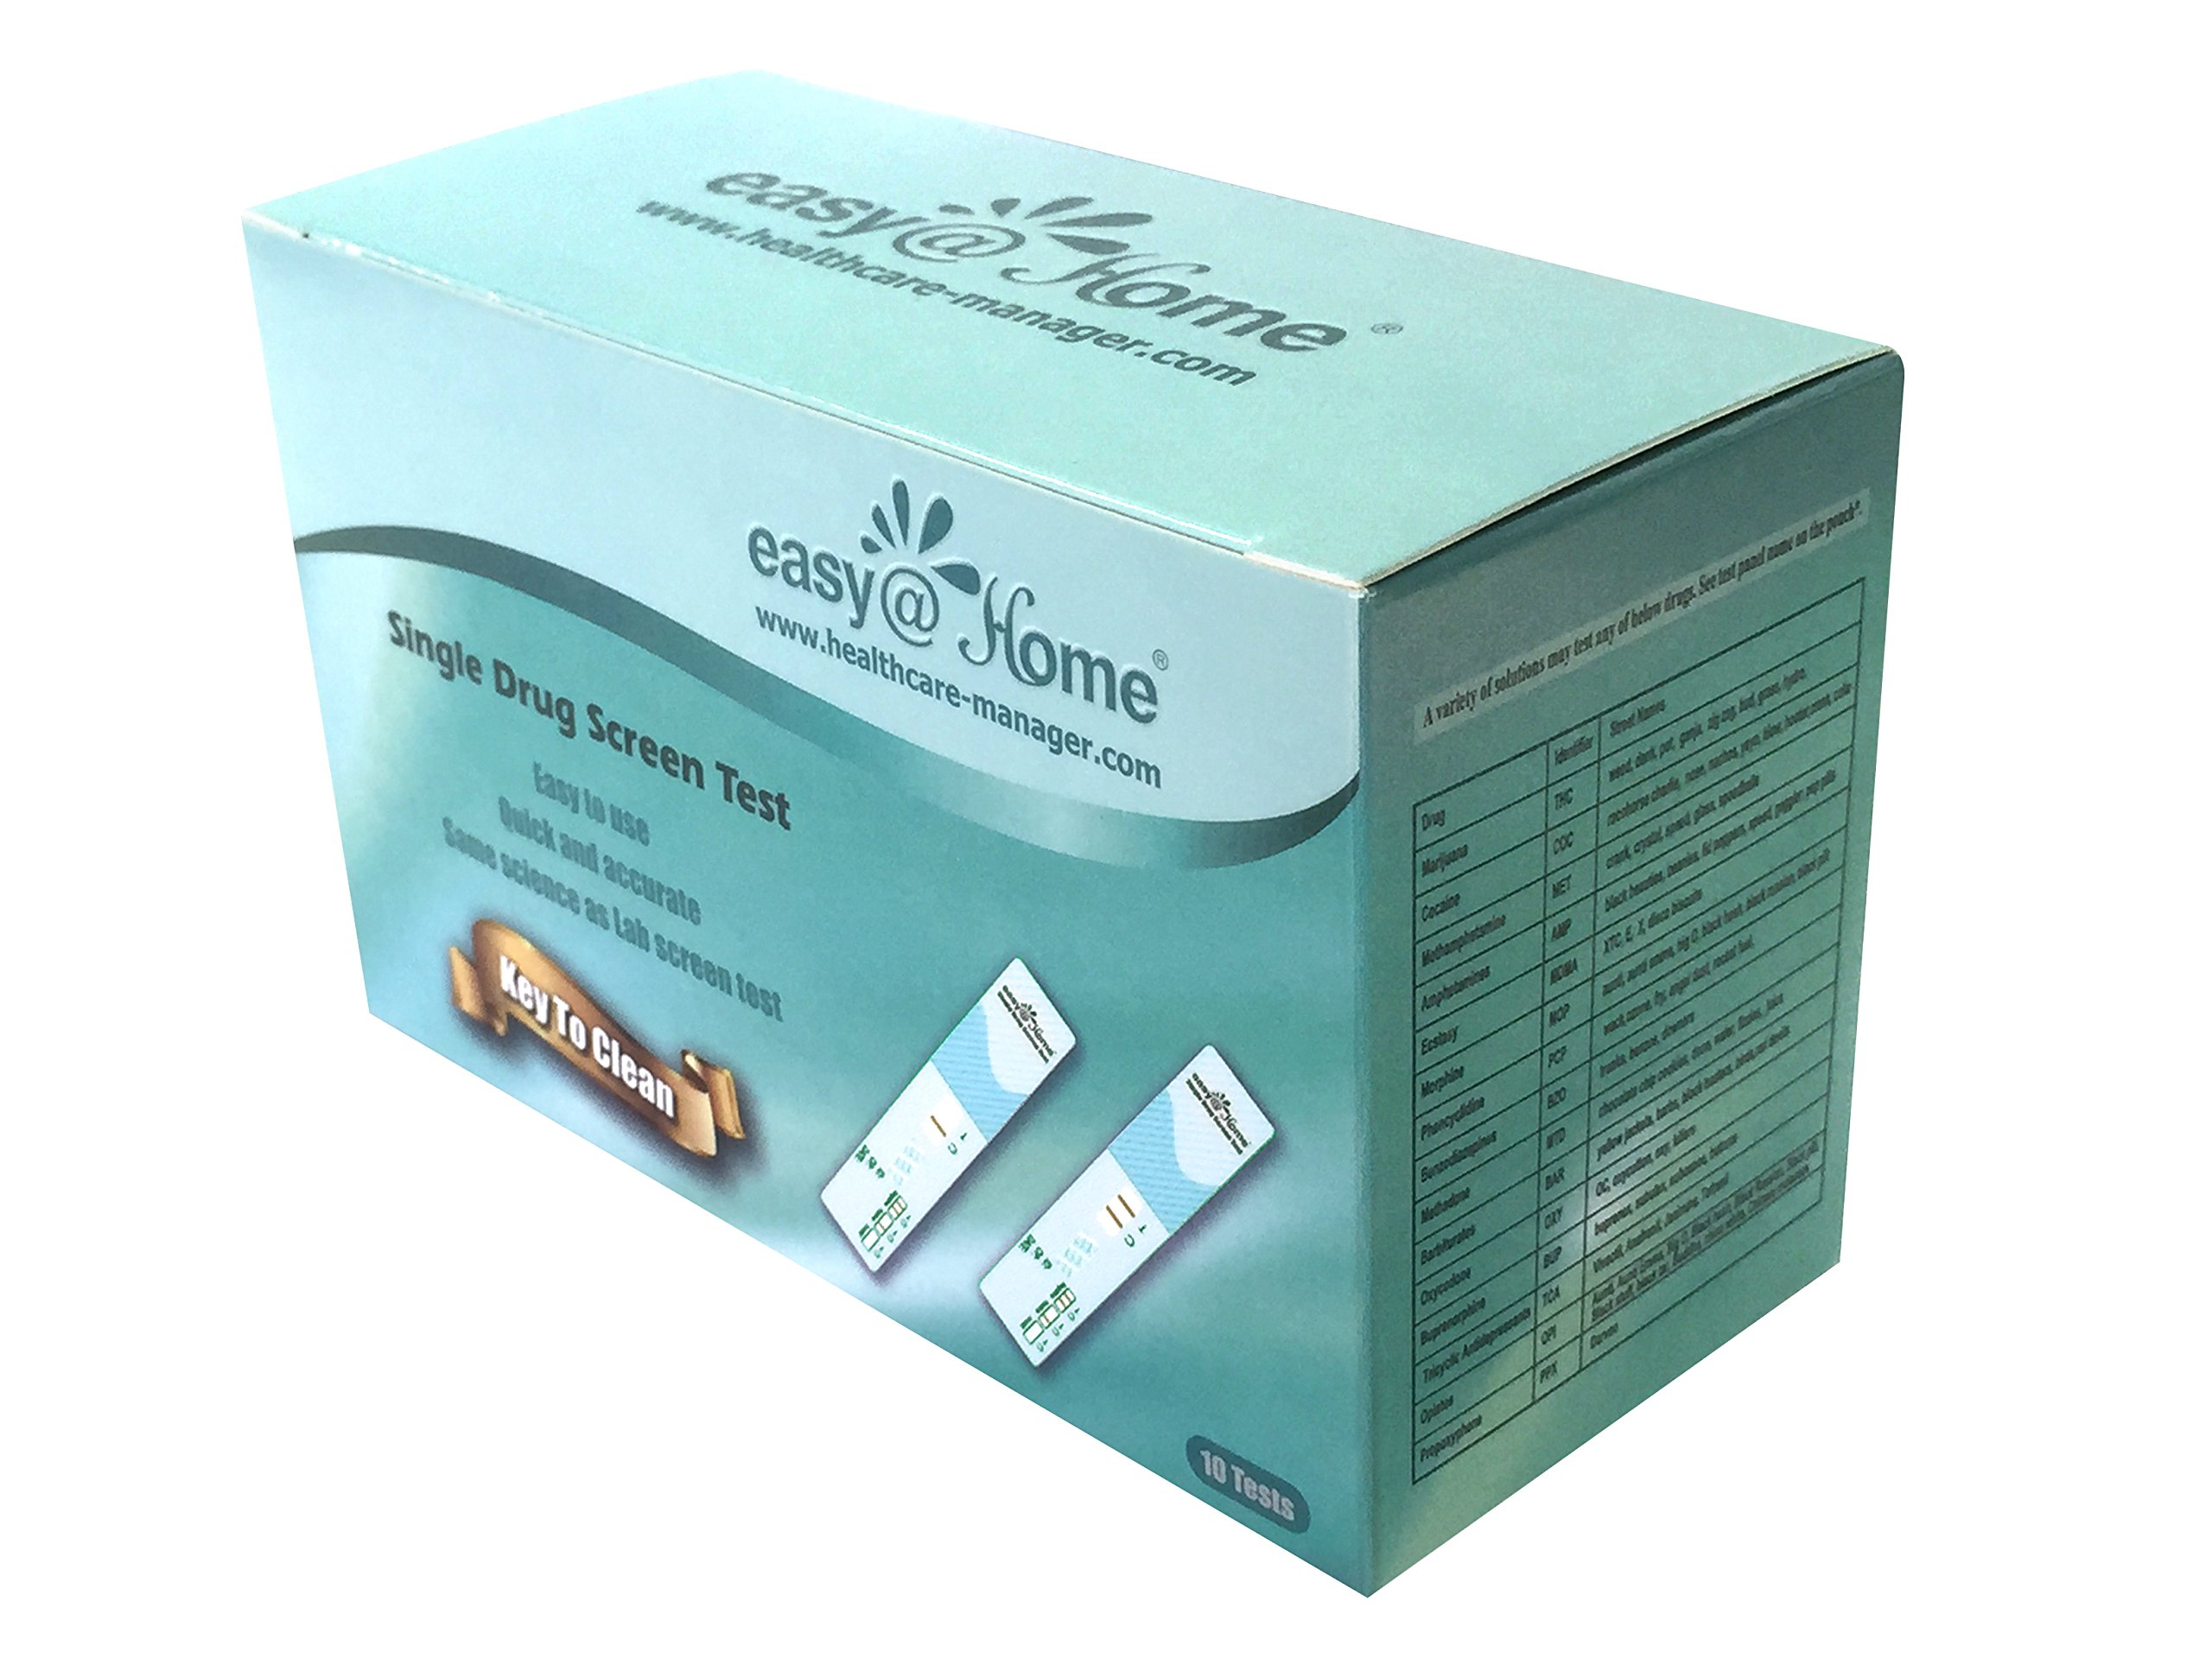 10 Pack Easy@Home Spice Test - Instant K2 Drug Test - Synthetic Marijuana Test Kit by Easy@Home (Image #5)